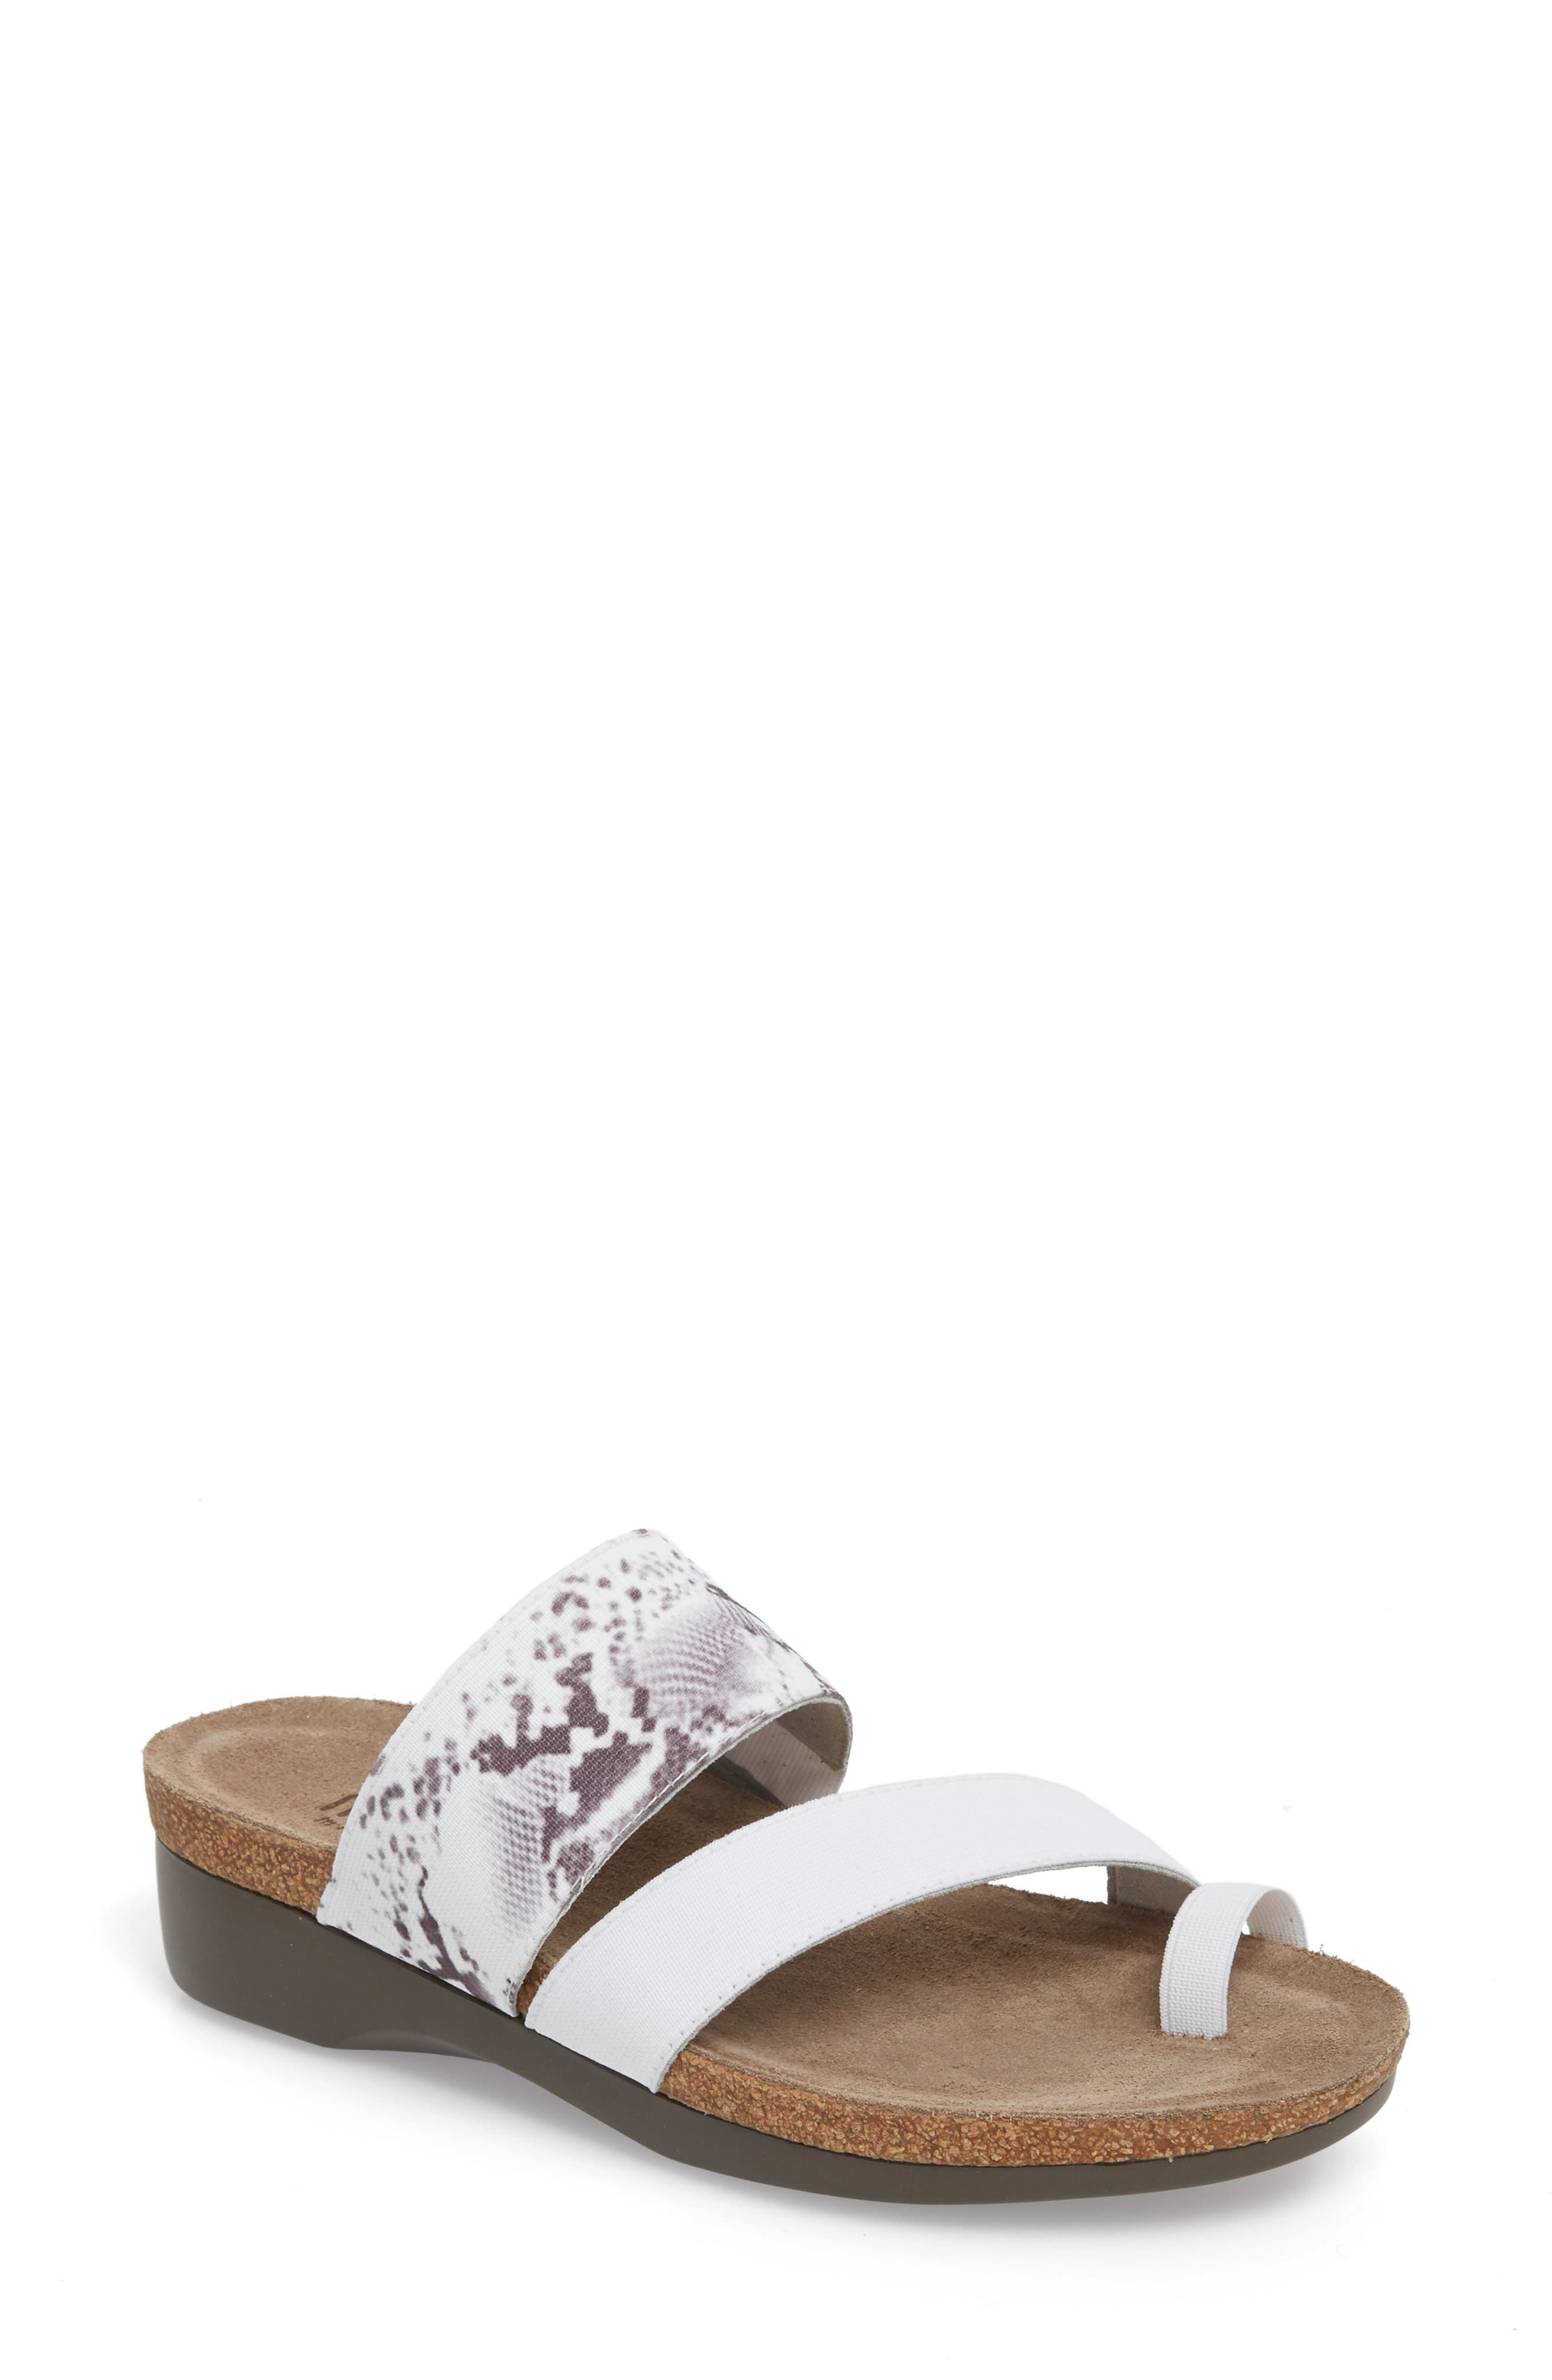 'Aries' Sandal,                             Main thumbnail 1, color,                             WHITE SNAKE PRINT LEATHER